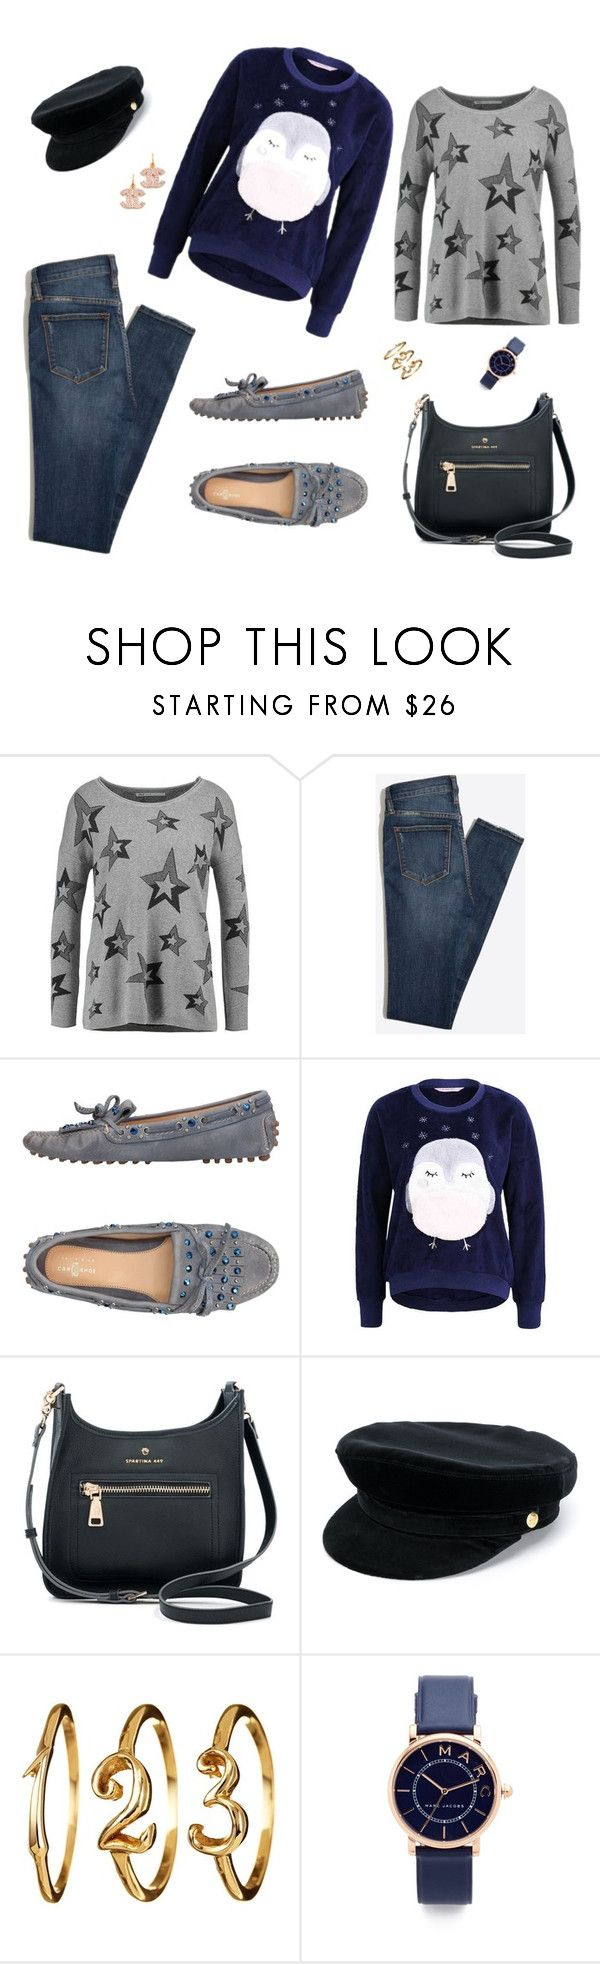 """""""owl sweater"""" by marlenewelke ❤ liked on Polyvore featuring Carshoe, Spartina 449, Manokhi and Marc Jacobs"""